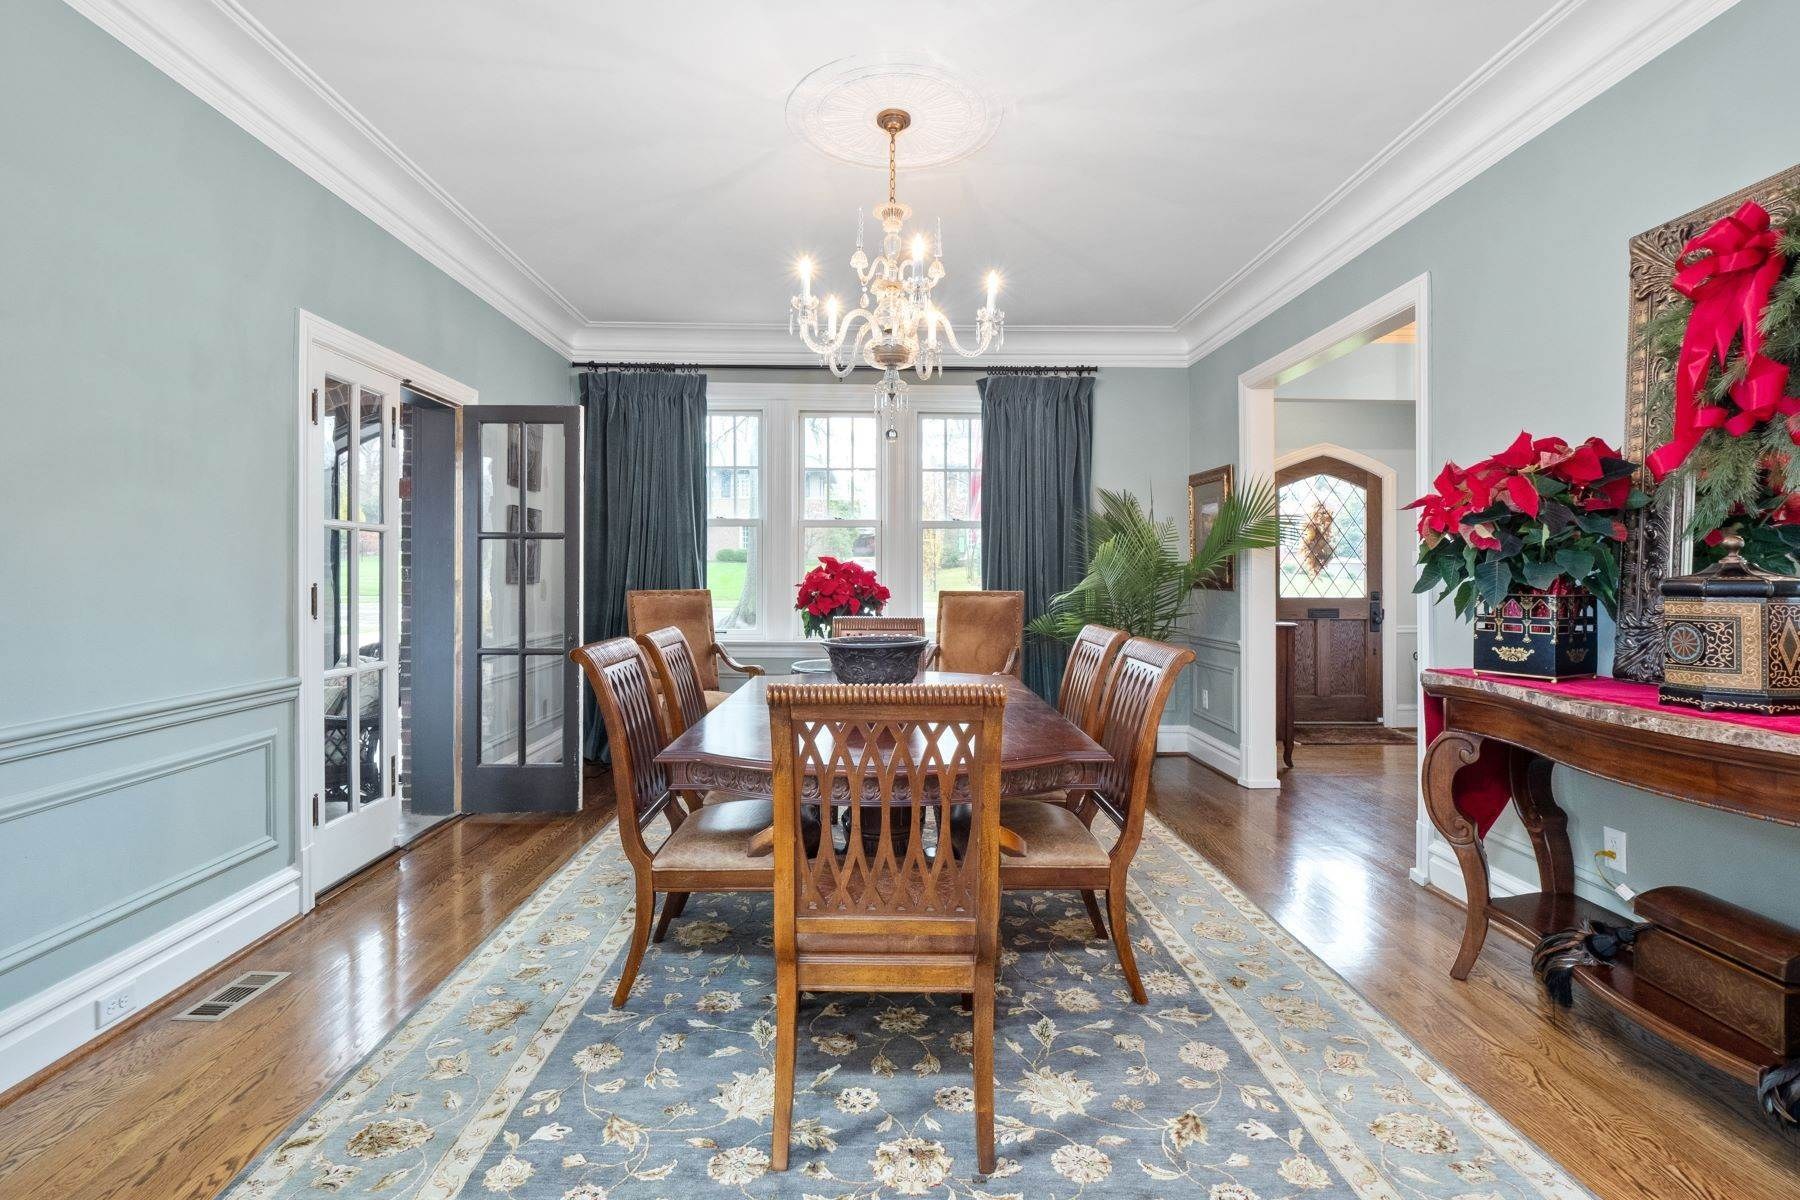 10. Single Family Homes for Sale at Charming U-City Home with Exceptional Craftsmanship 7255 Maryland Avenue University City, Missouri 63130 United States